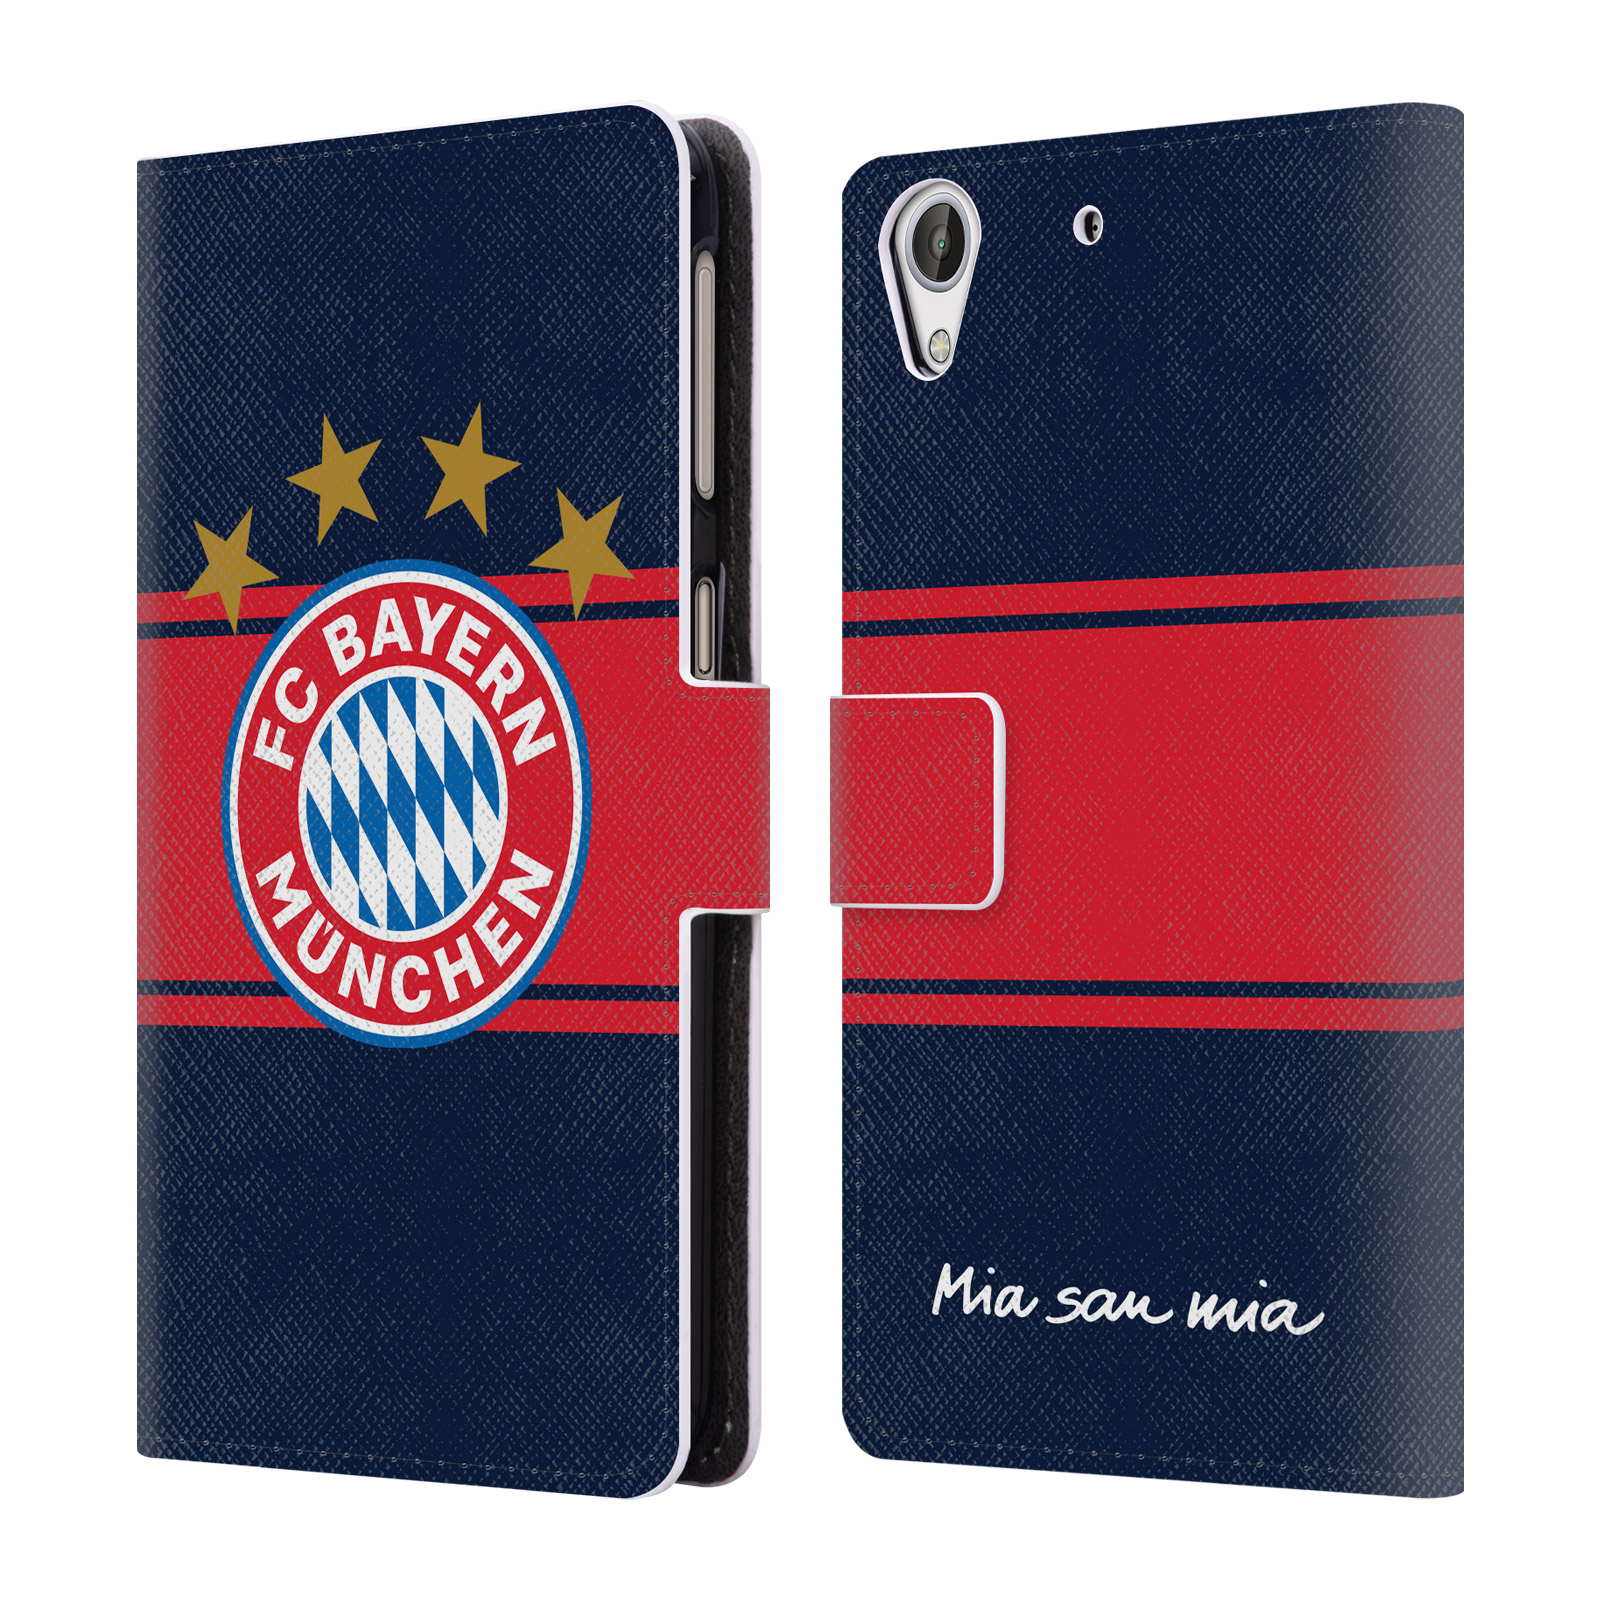 FC-BAYERN-MUNICH-2017-18-LOGO-KIT-LEATHER-BOOK-WALLET-CASE-FOR-HTC-PHONES-2